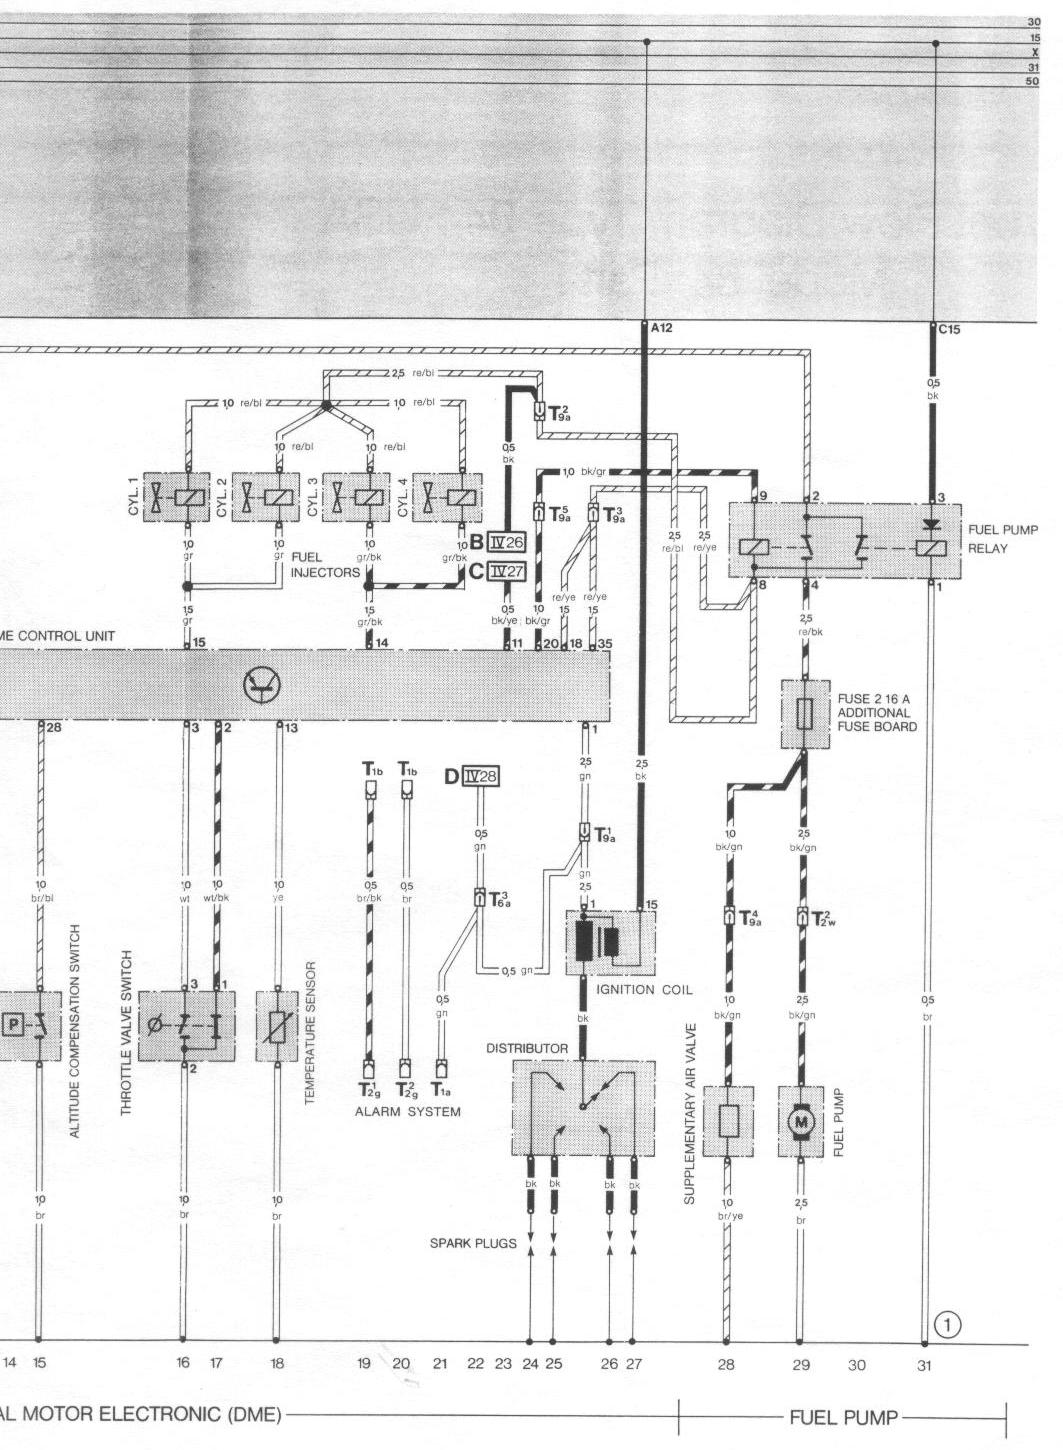 944_84_1_2 pelican parts porsche 924 944 electrical diagrams porsche 914 fuse box diagram at readyjetset.co